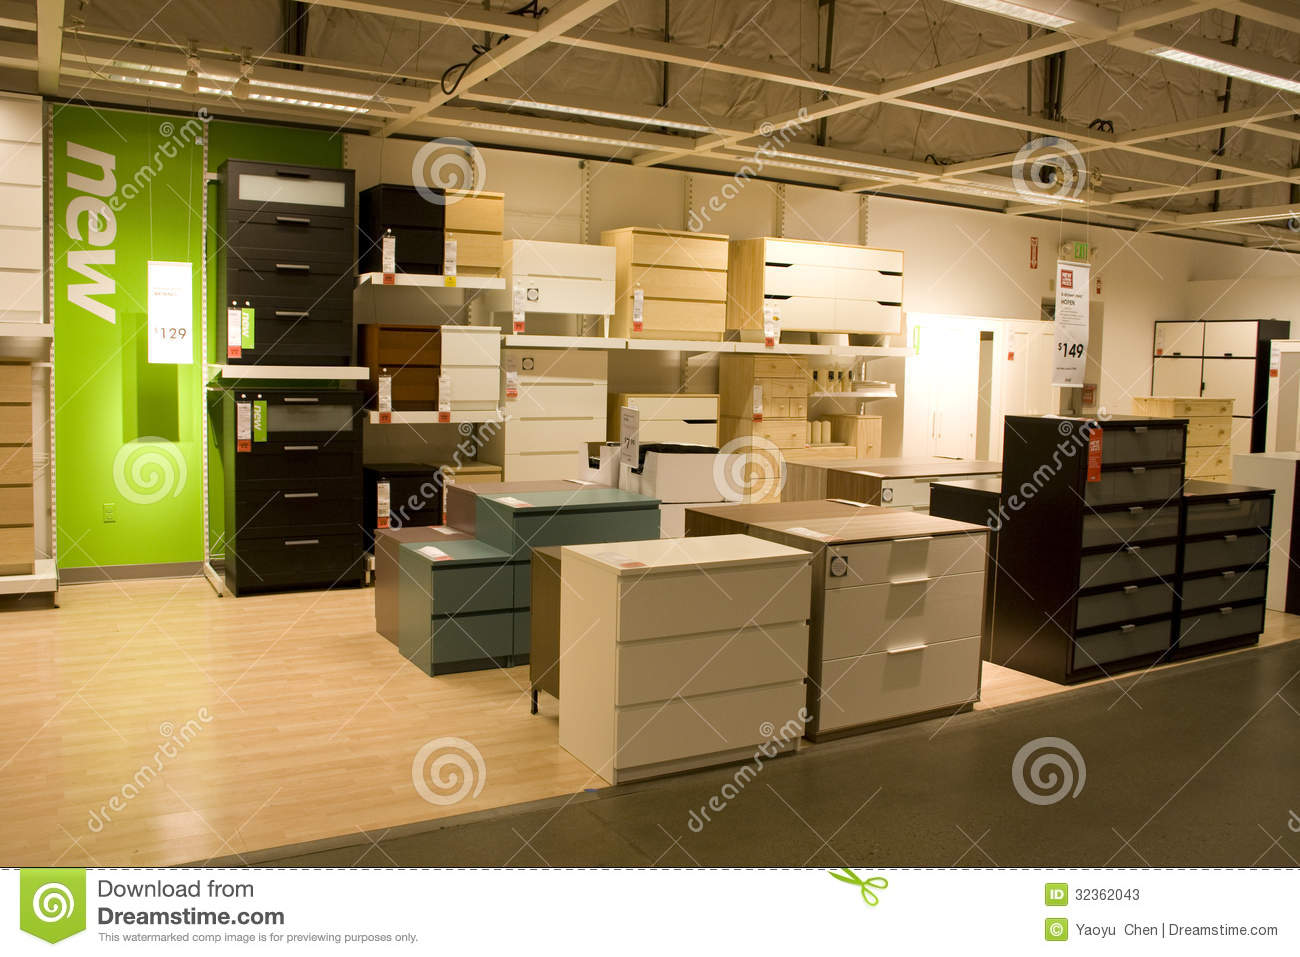 Furniture store editorial stock photo image 32362043 for Furniture warehouse seattle